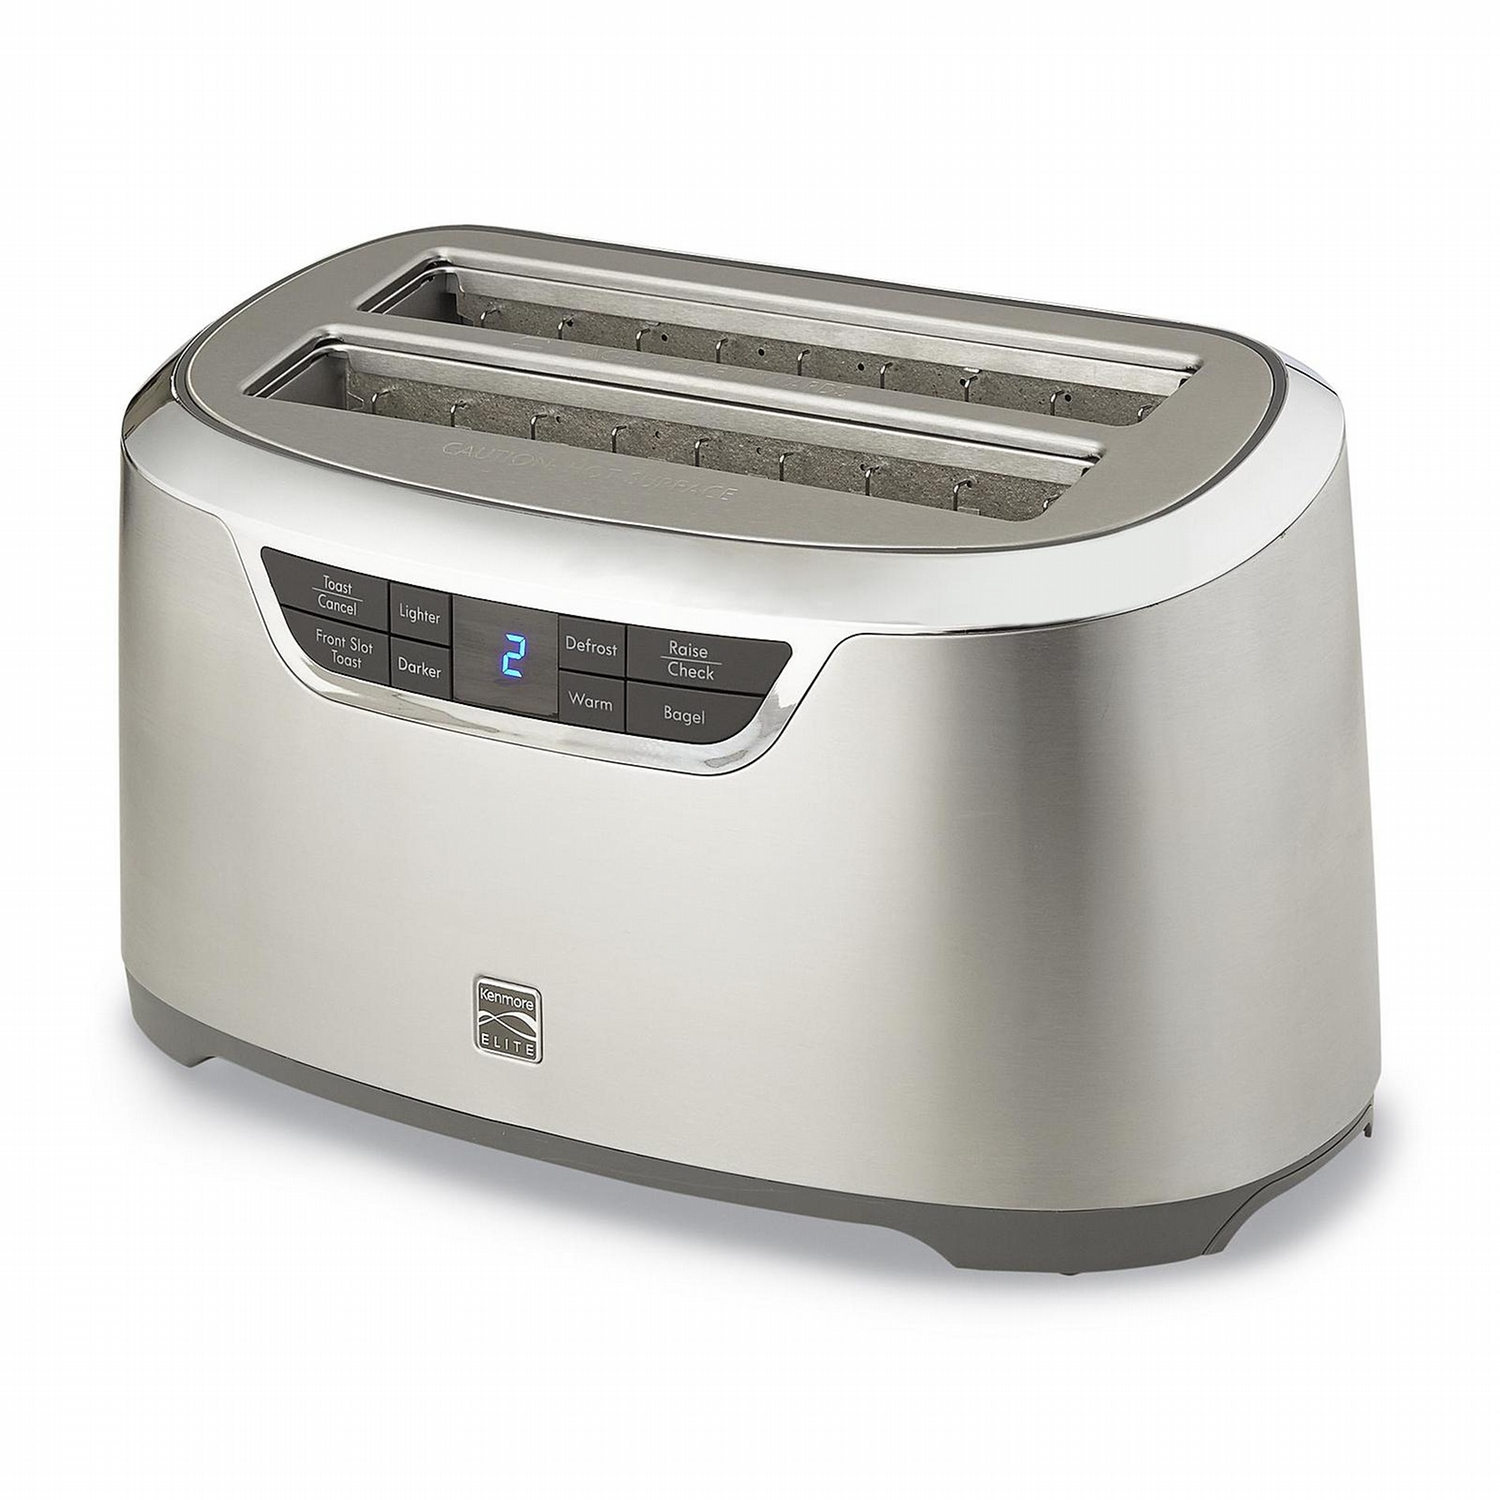 Kenmore Elite 76774 4-Slice Auto-Lift Long Slot Toaster